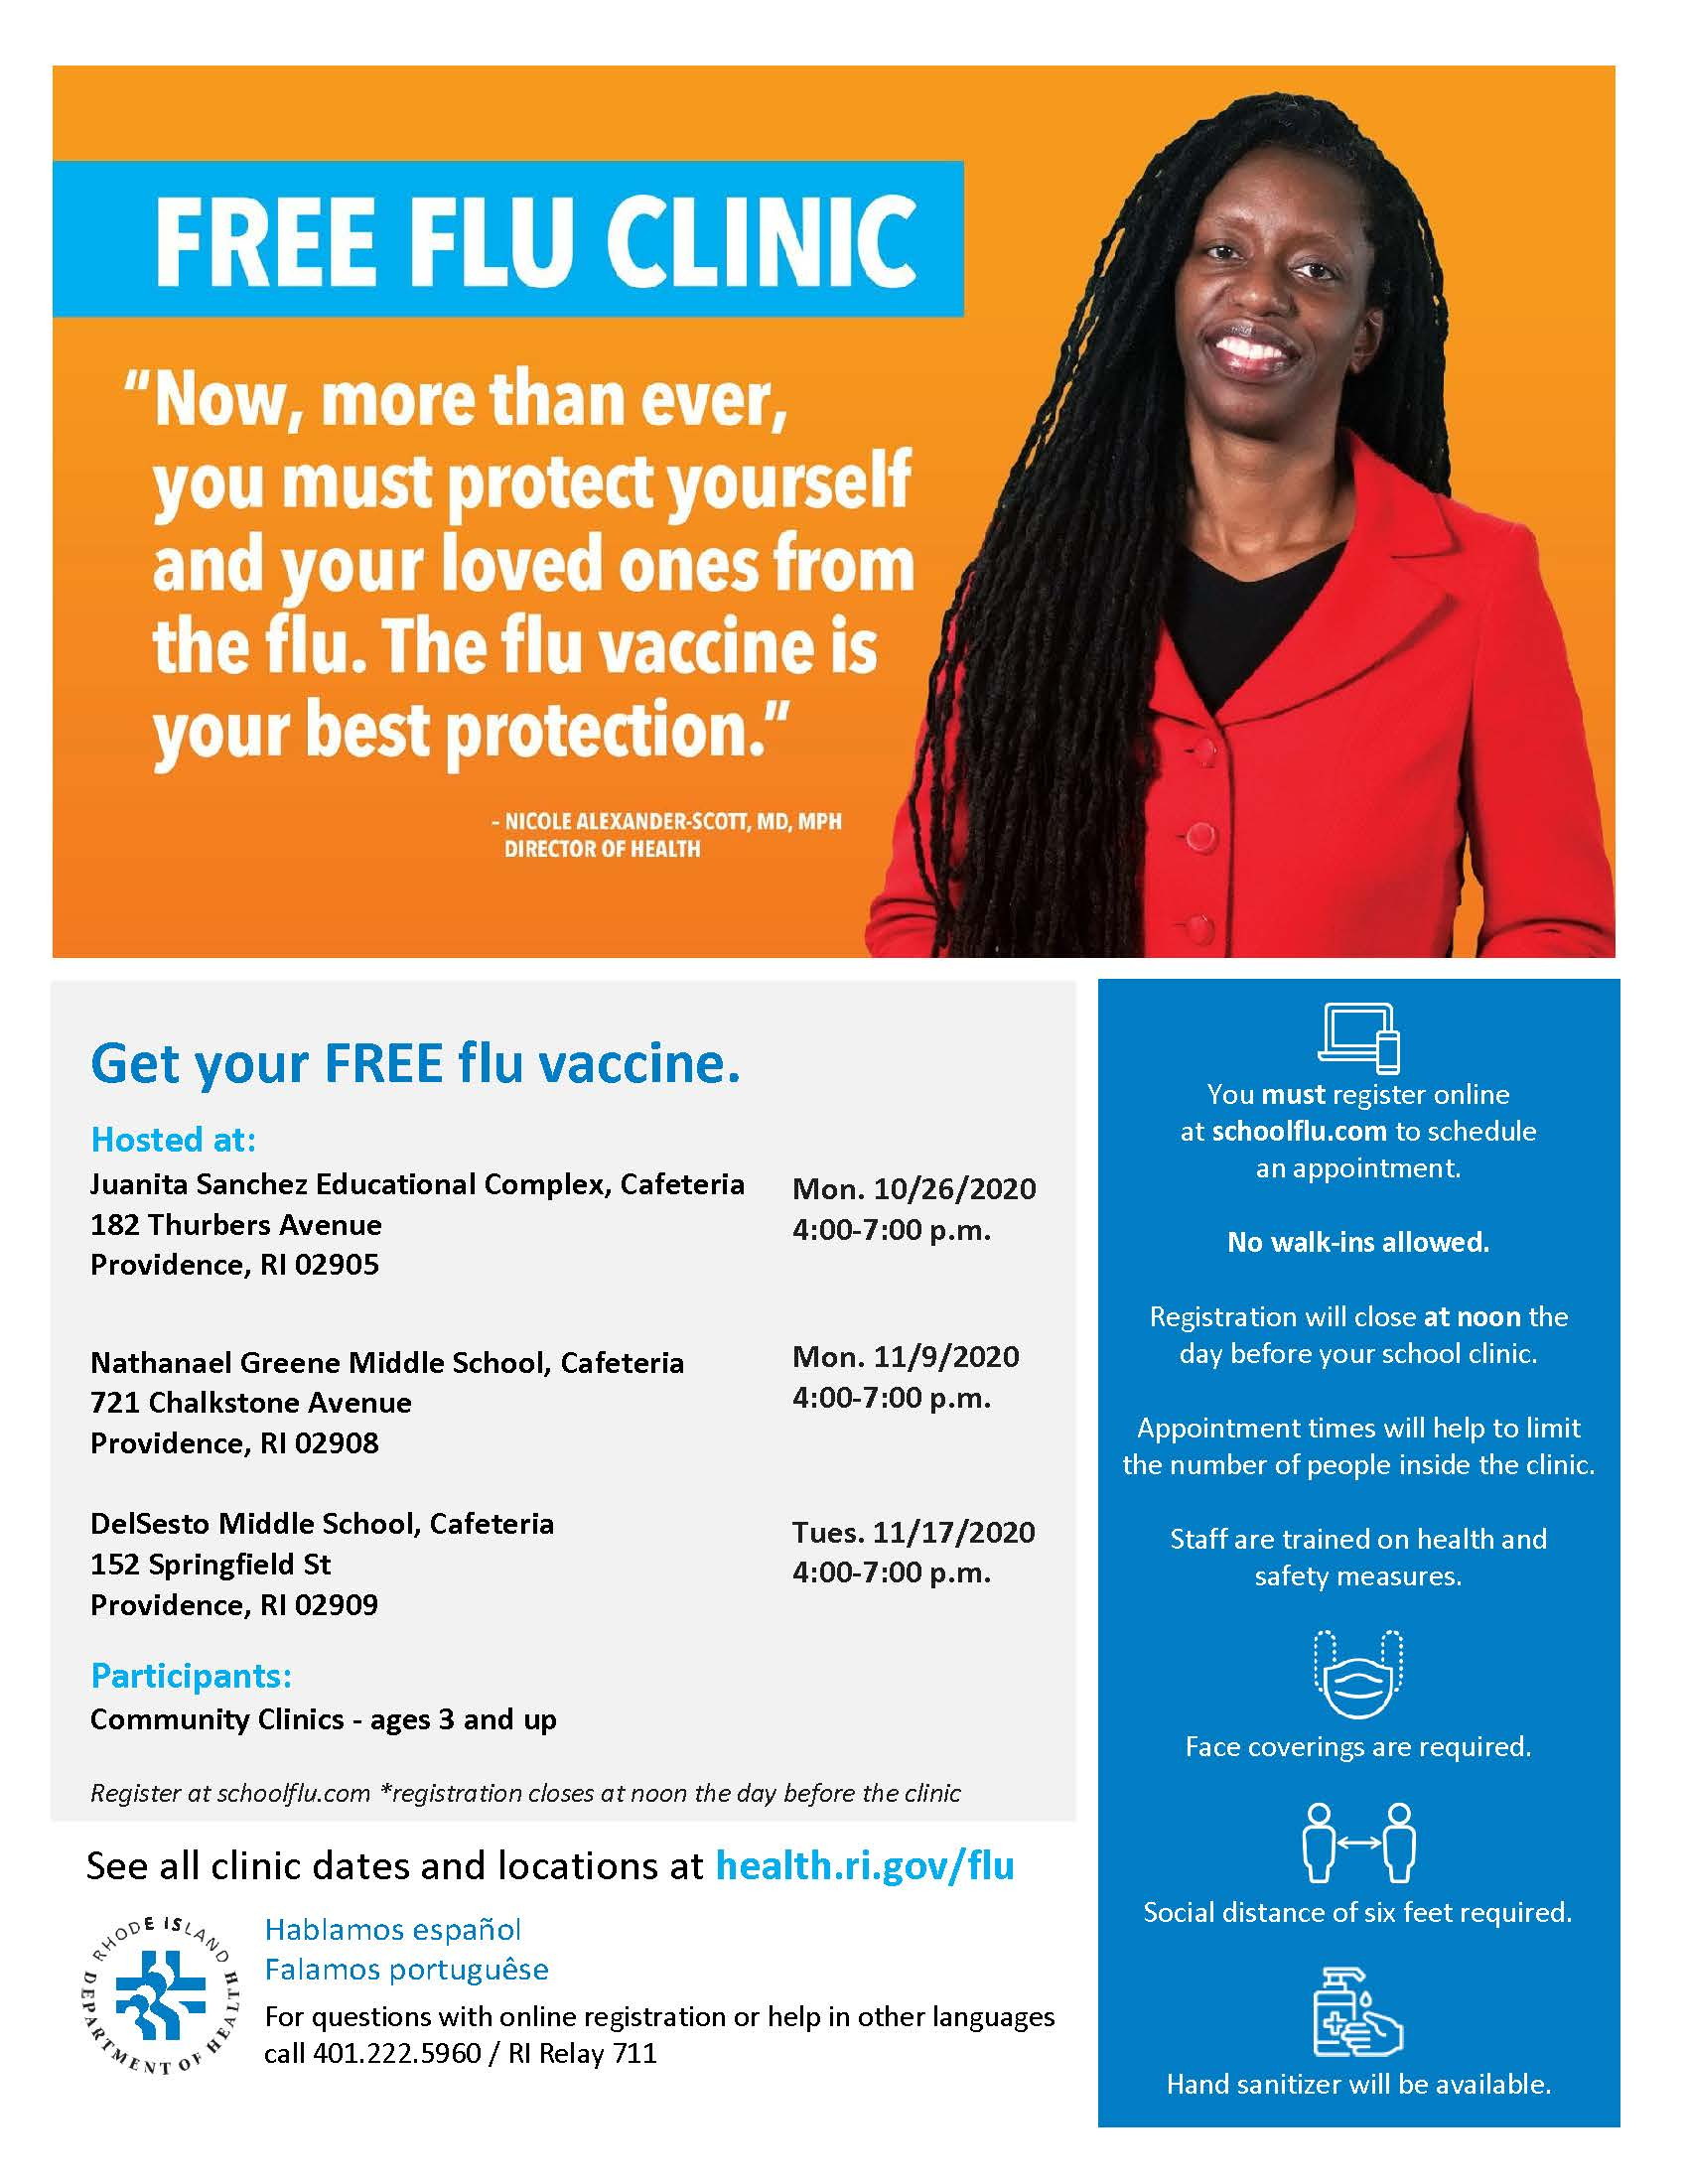 2020_District_Flu_Clinic_Flyer_Providence_(002).jpg